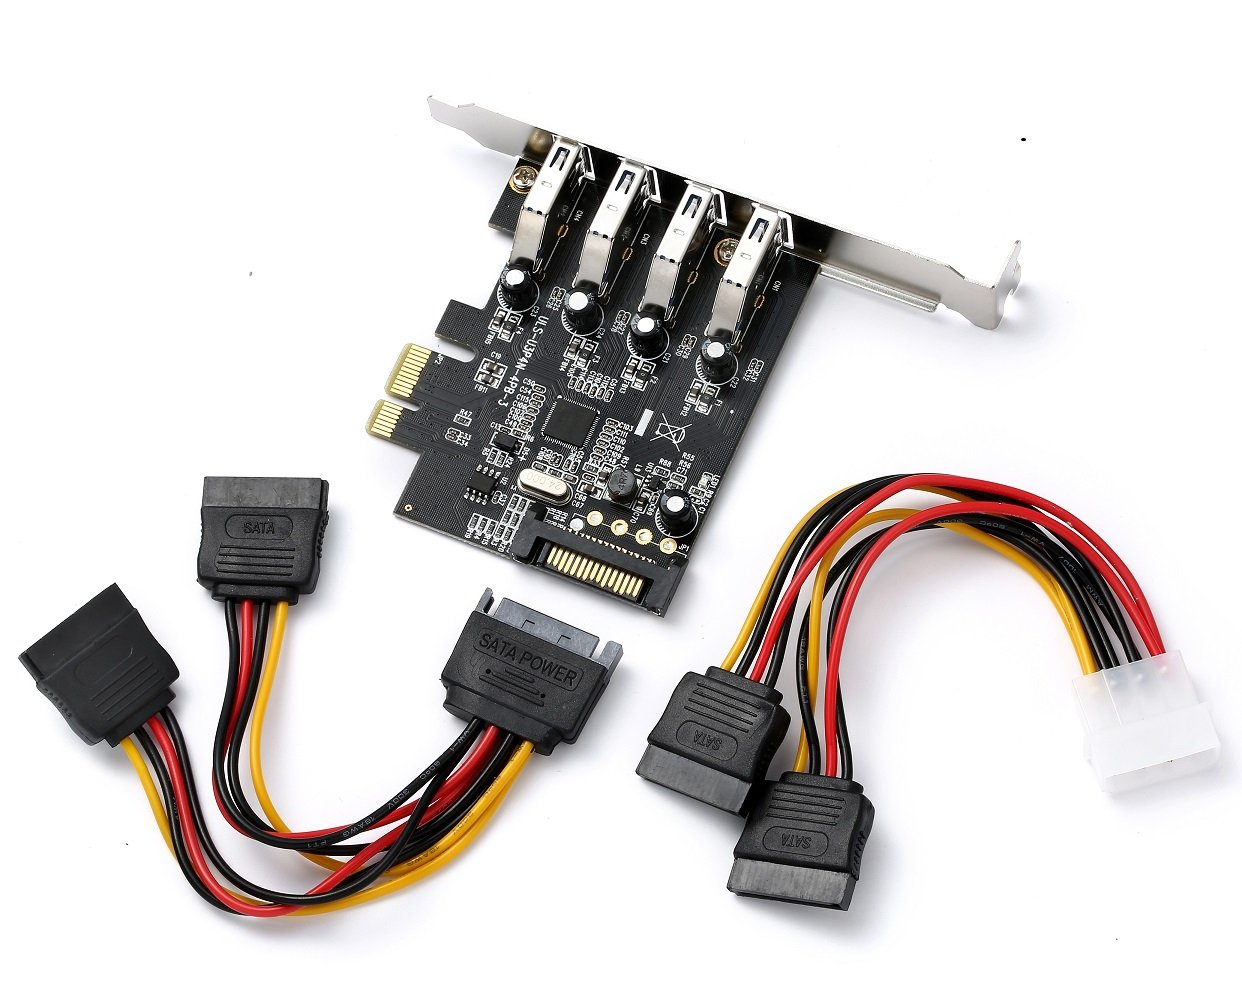 Amazon.com: 4 Port PCI Express PCIe SuperSpeed USB 3.0 Controller ...